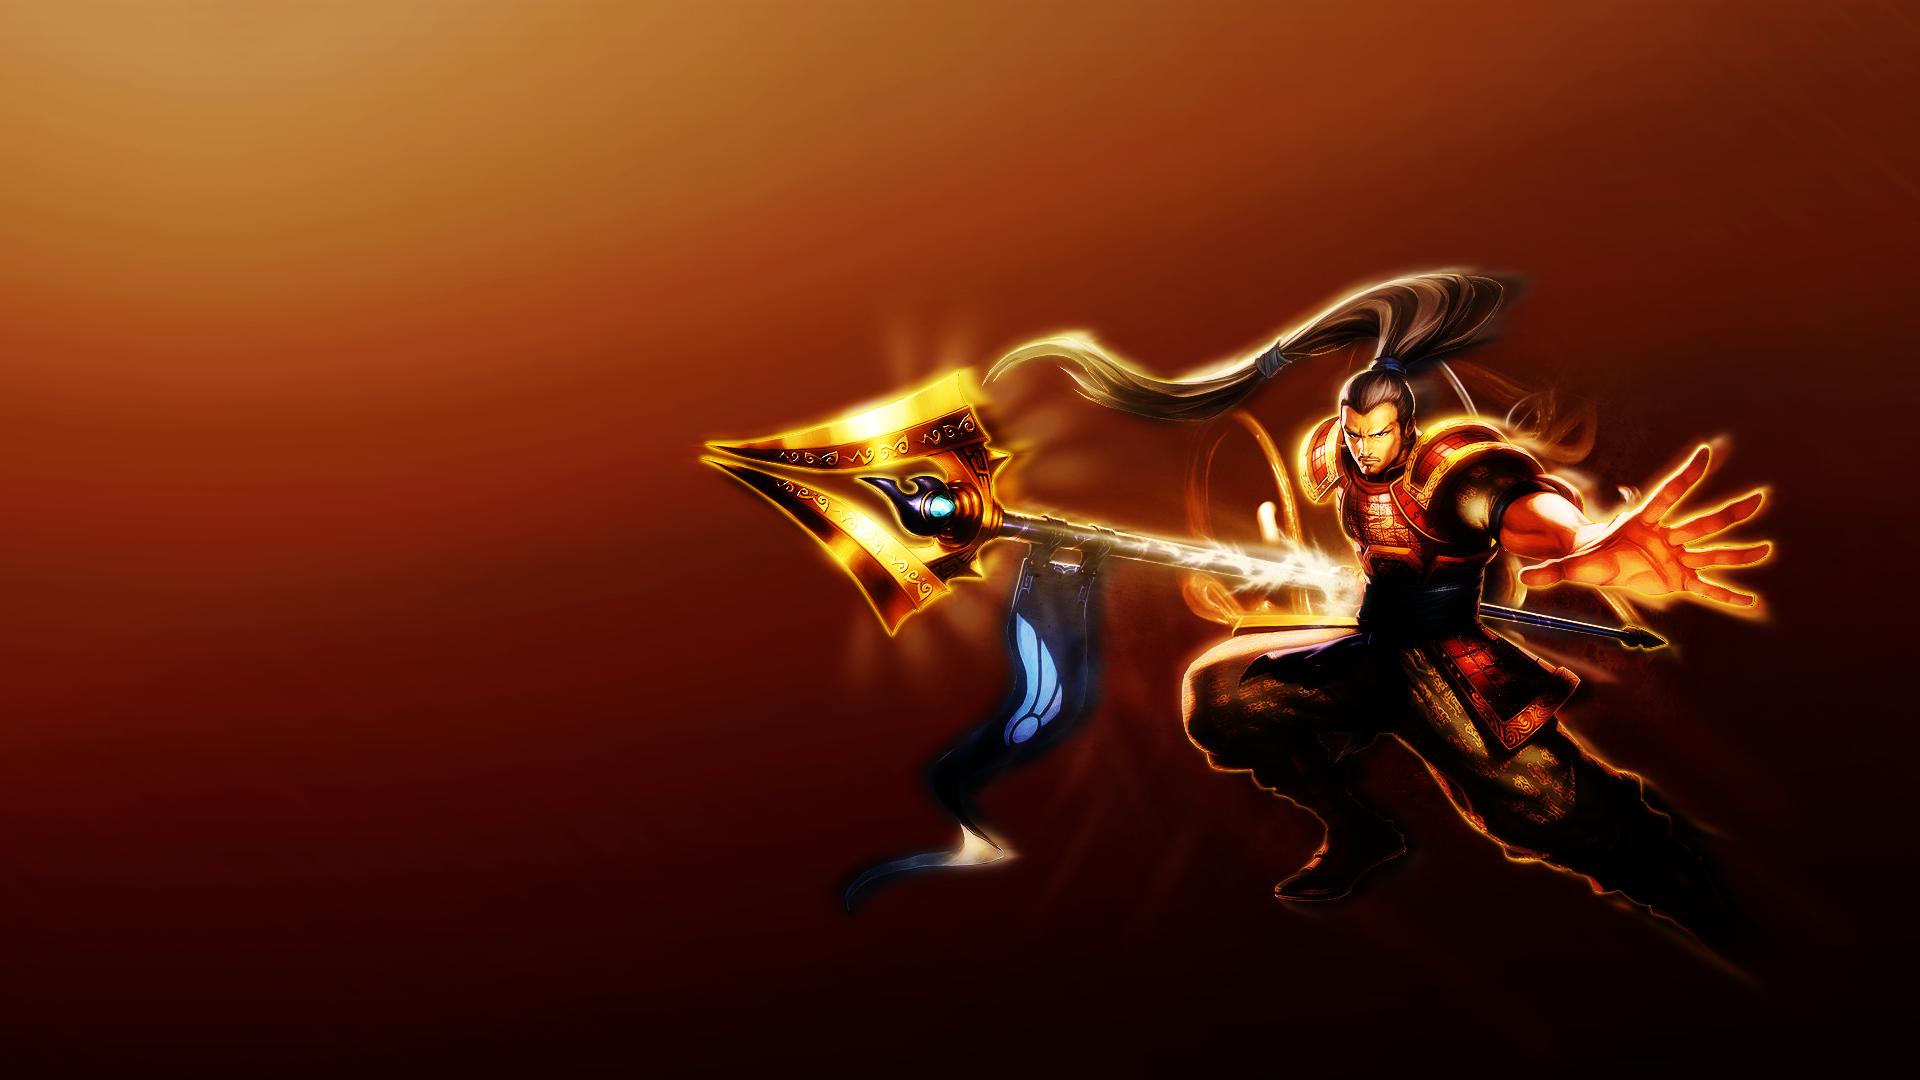 League of legends full hd wallpaper and background image 1920x1080 video game league of legends xin zhao league of legends wallpaper voltagebd Image collections